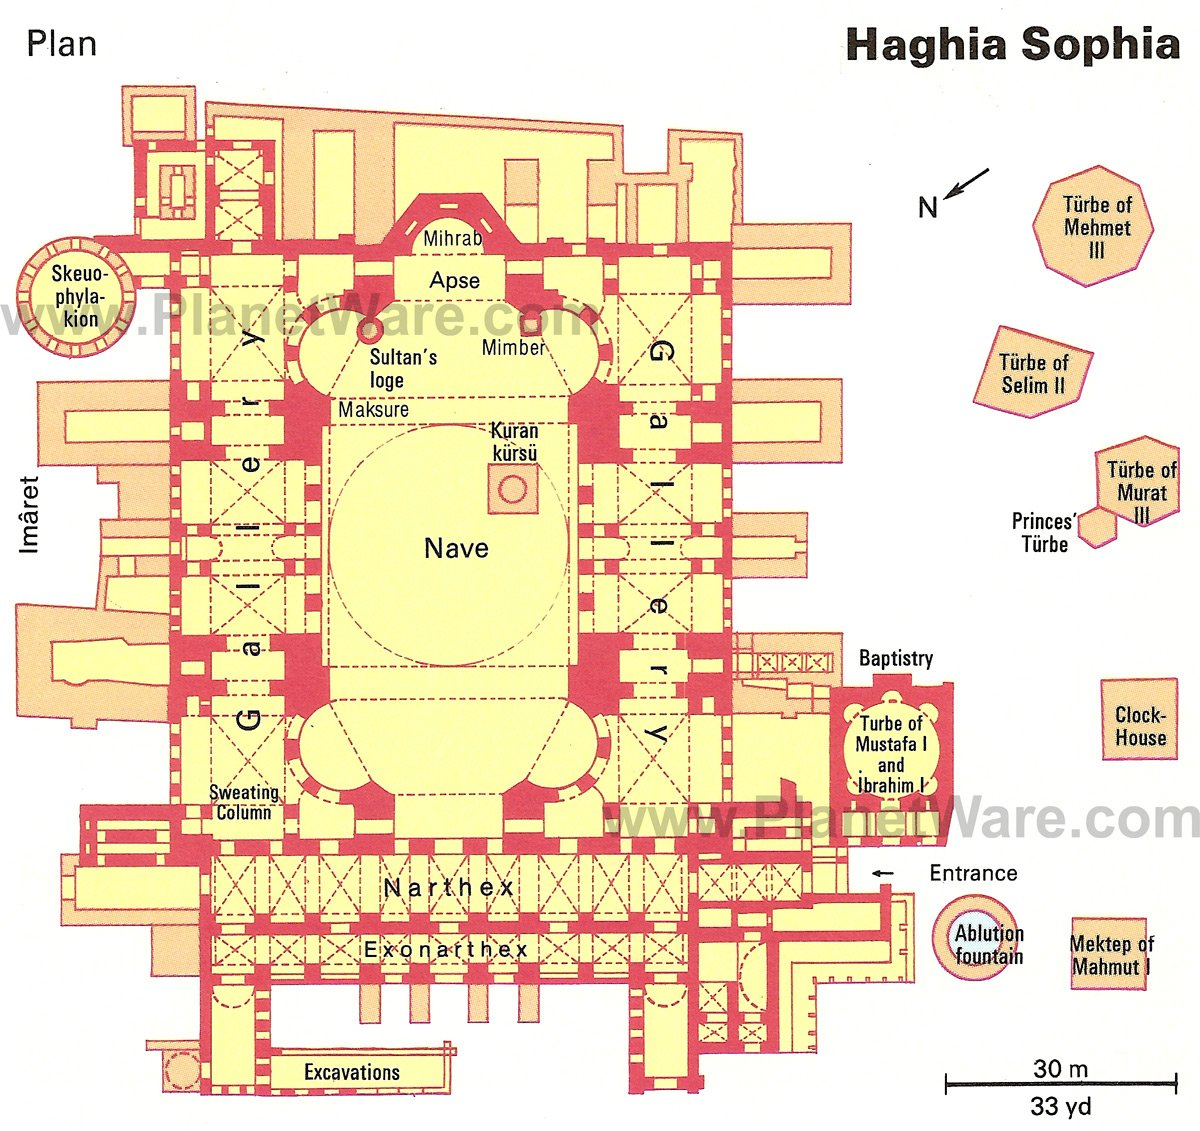 Exploring Aya Sofya Hagia Sophia A Visitors Guide – Istanbul Tourist Map